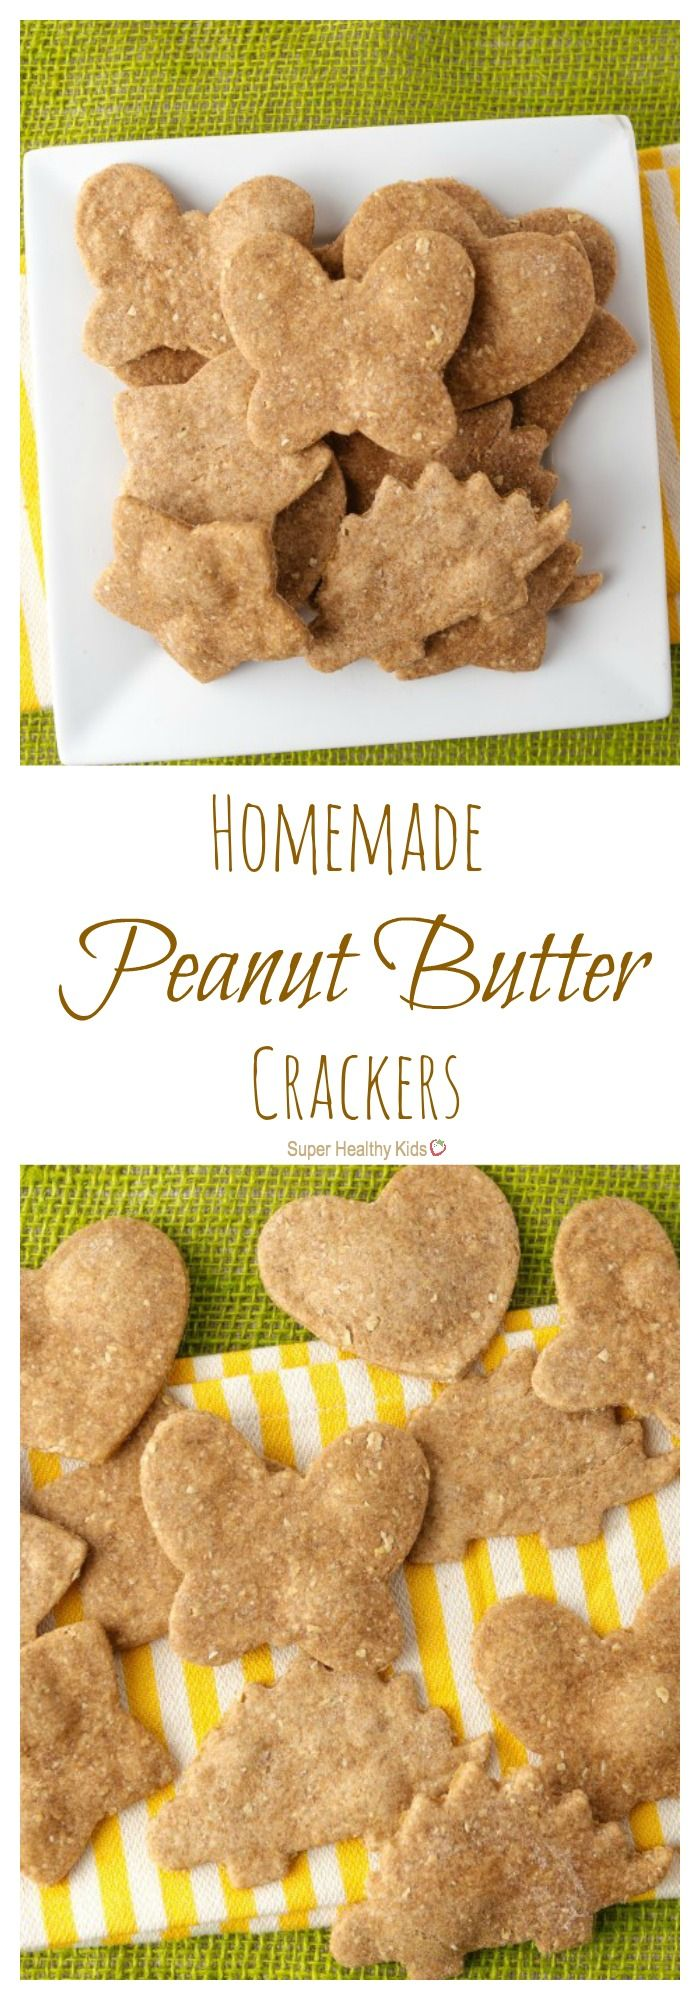 Homemade Peanut Butter Crackers. Crunchy snacking, anywhere! http://www.superhealthykids.com/homemade-peanut-butter-crackers/